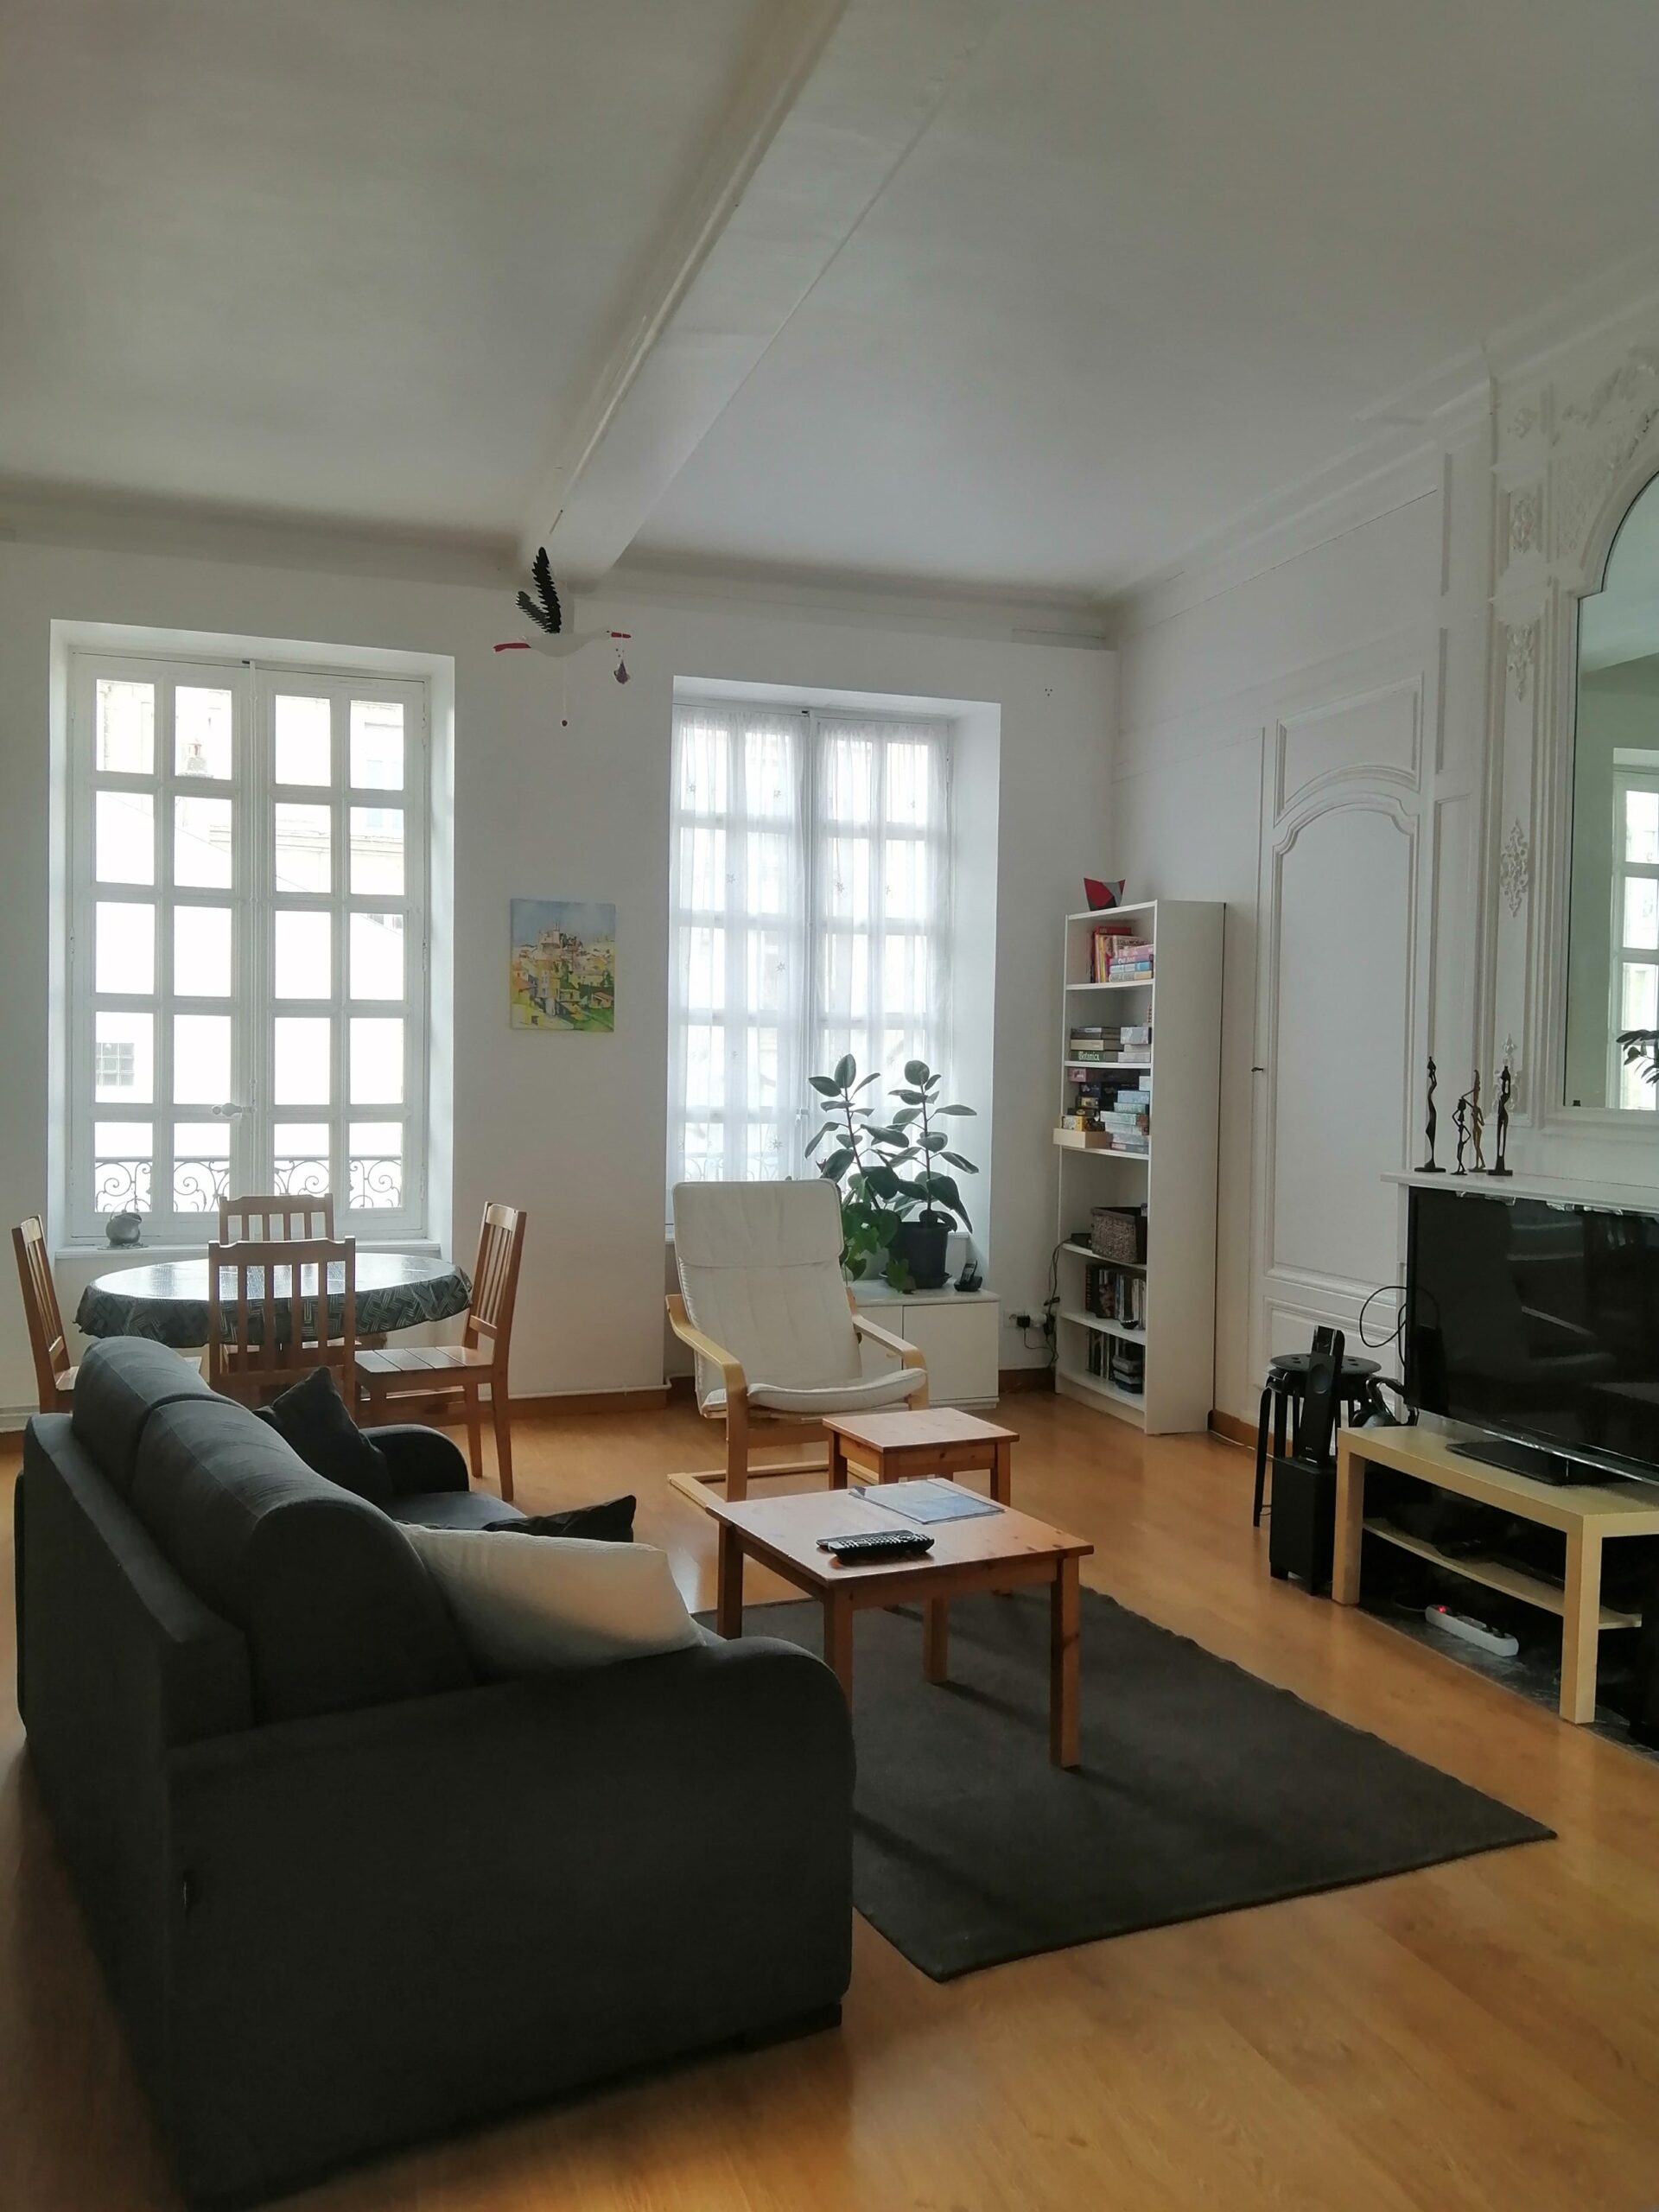 Damonte LOCATION APPARTEMENT T3 CHALONS EN CHAMPAGNE CL1654